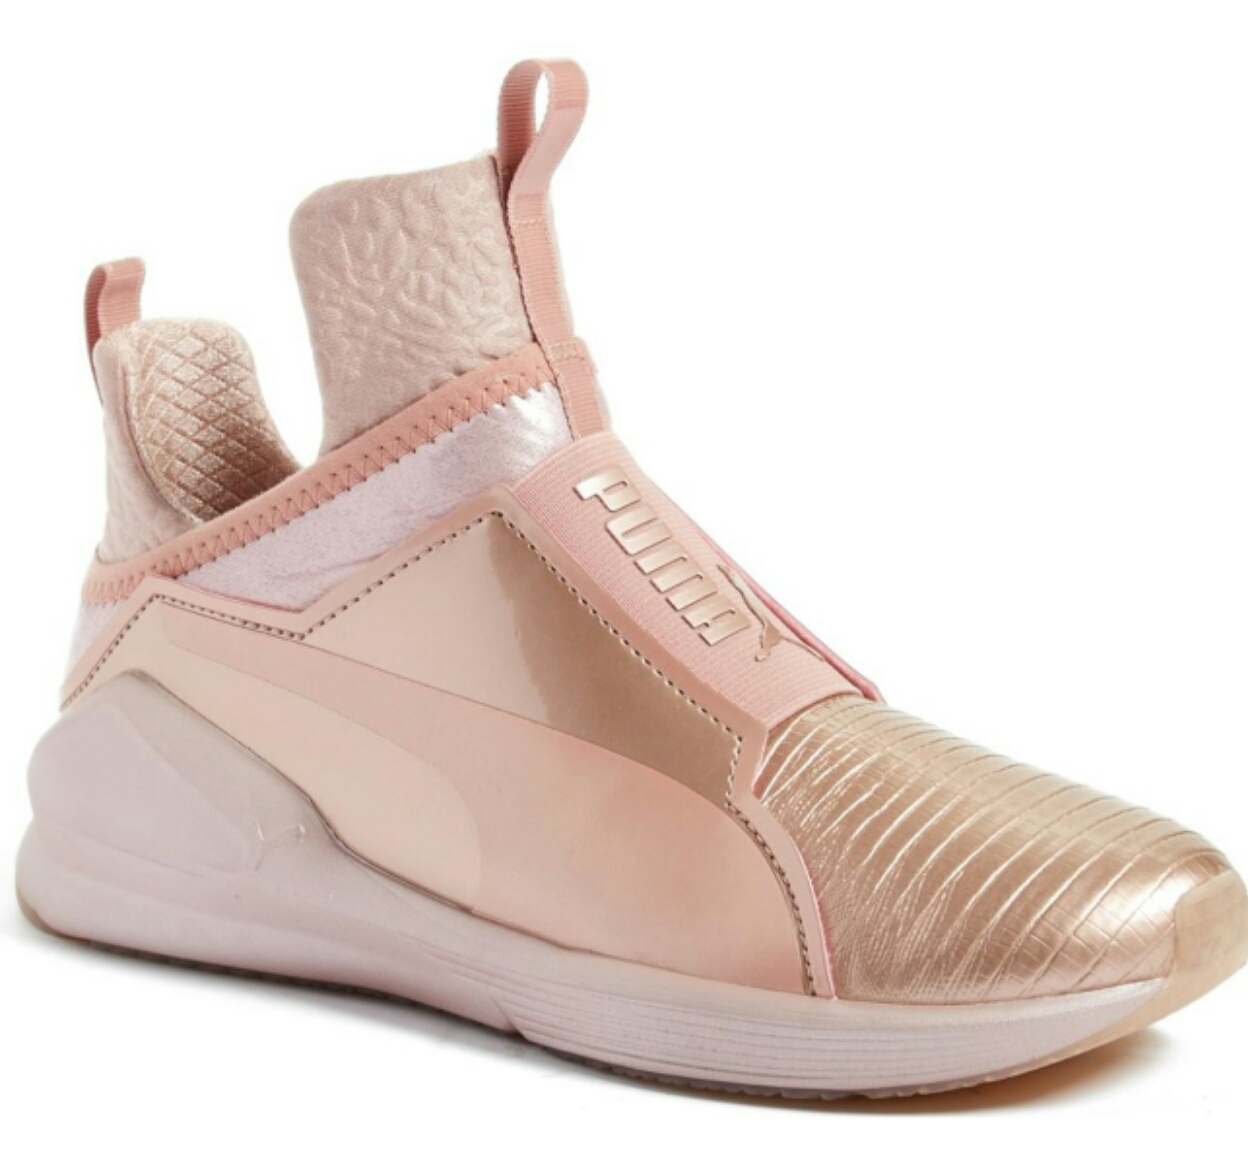 more photos 3ab27 b9a2c Shoe of the Day | FENTY PUMA by Rihanna Fierce KMR High Top ...